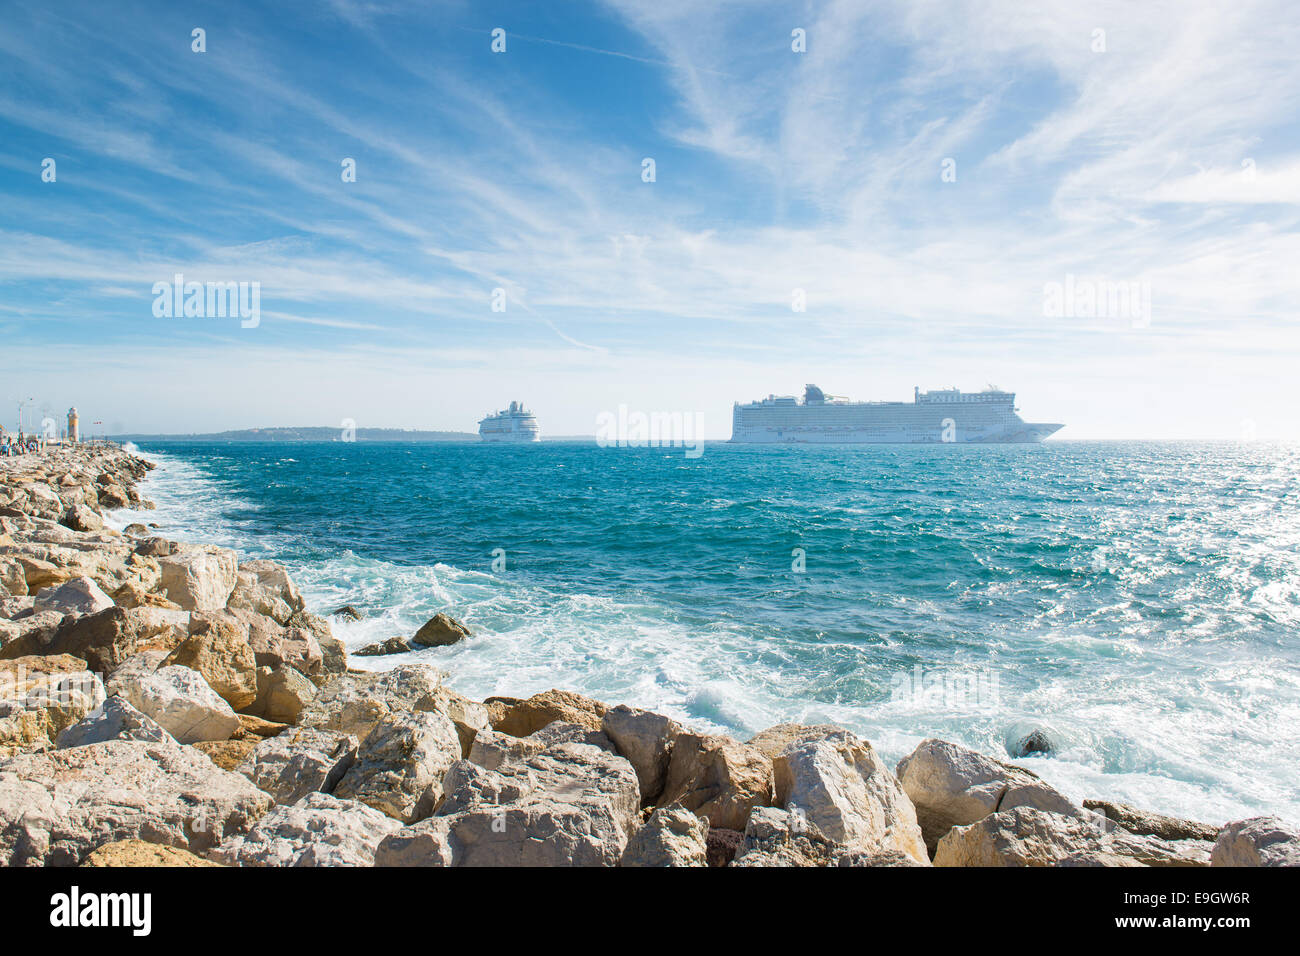 Cruise ships anchored off the coast of Cannes, France - Stock Image